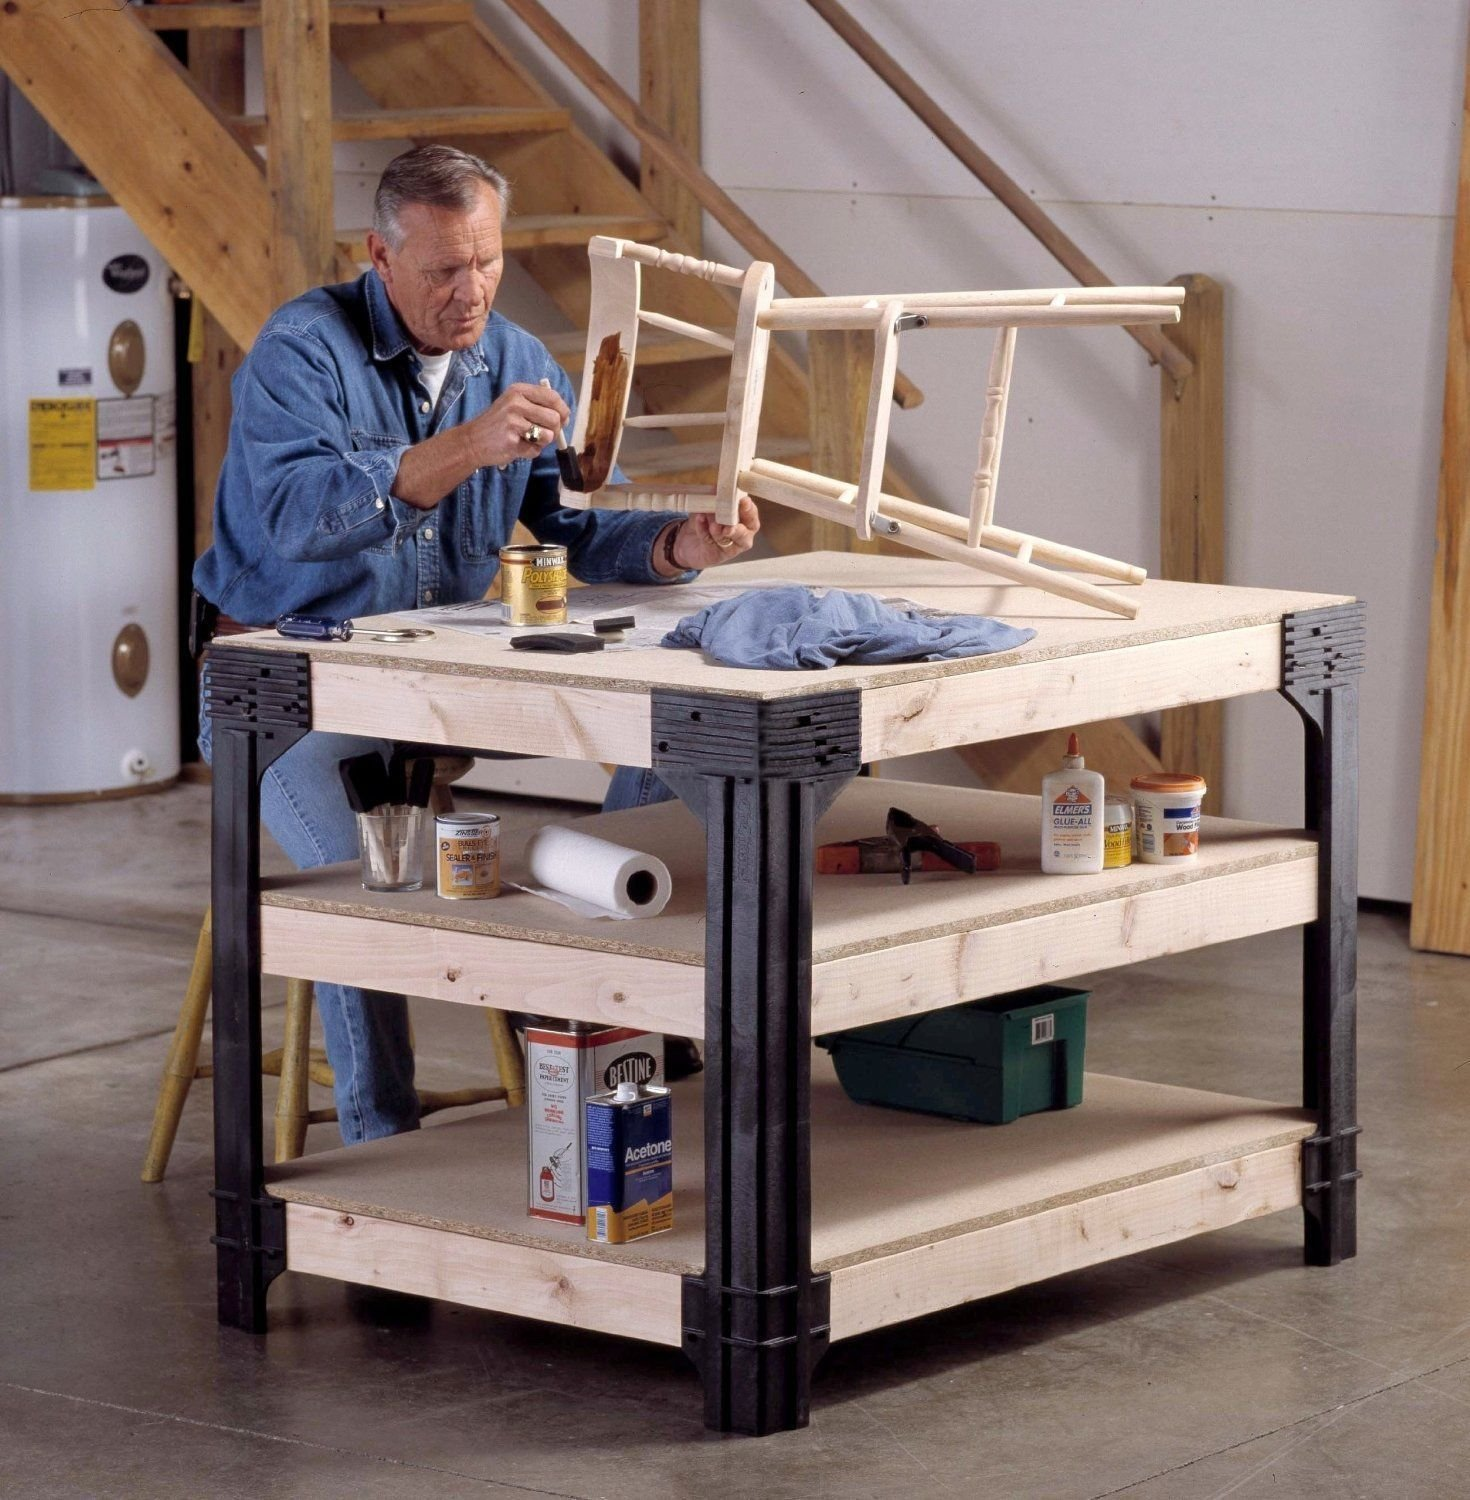 Amazon.com (Ship from USA) DIY Custom Workbench Storage Wooden Shelf Garage Shop Workshop Table Bench Kit /ITEM NO#E8FH4F854133605 Kitchen u0026 Dining & Amazon.com: (Ship from USA) DIY Custom Workbench Storage Wooden ...